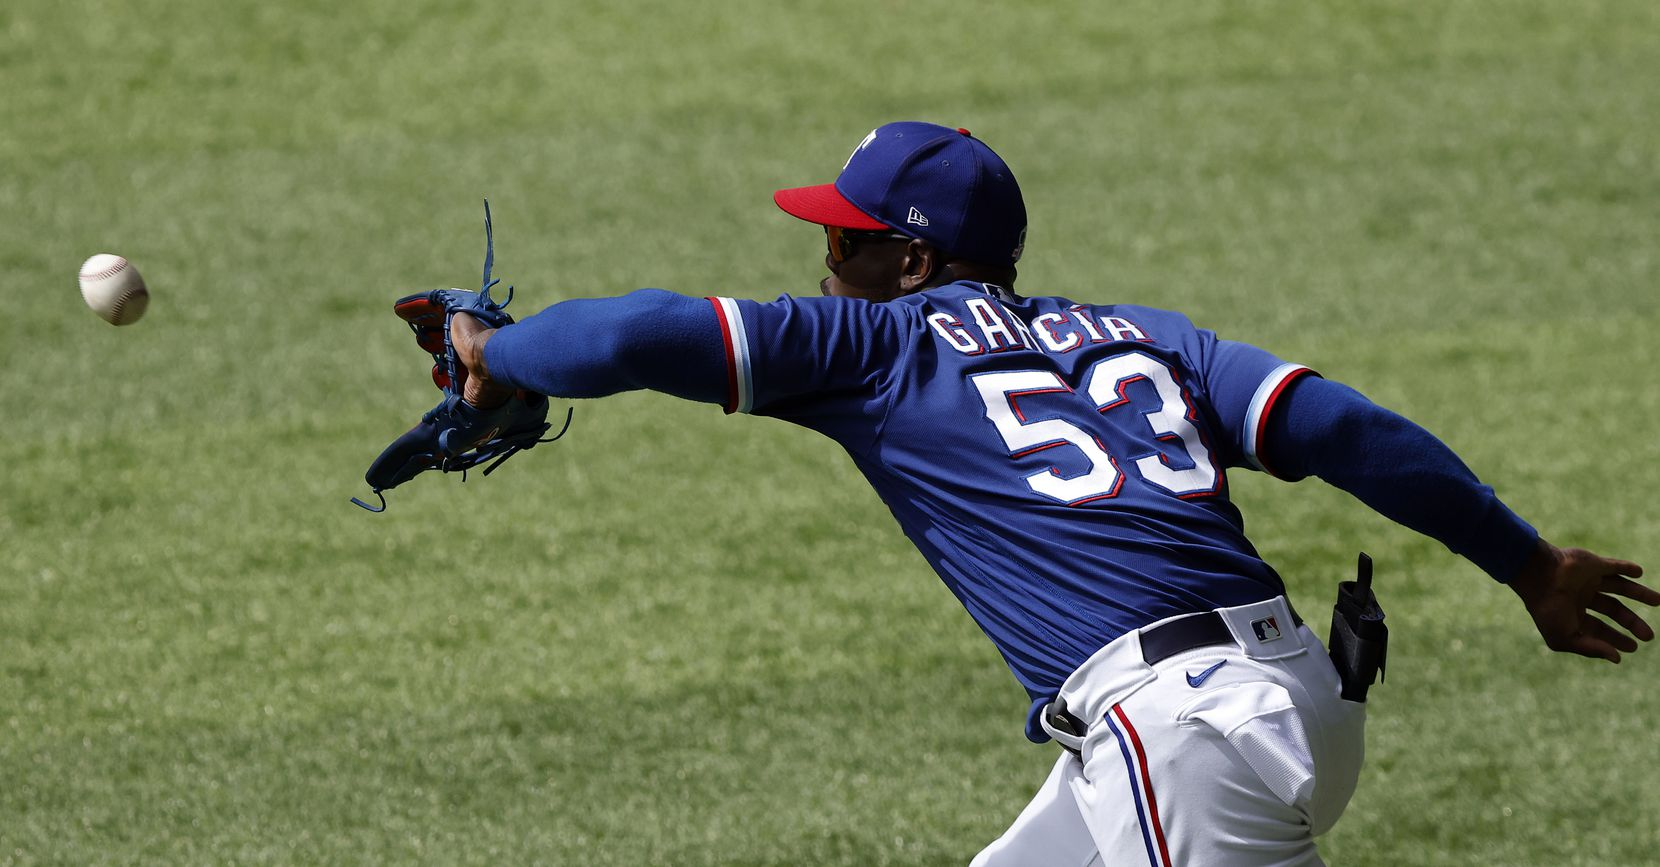 Texas Rangers right fielder Adolis García snares a line drive by Milwaukee Brewers batter Corey Ray in the eighth inning at Globe Life Field in Arlington, Texas. The teams were playing in an exhibition game, Tuesday, March 30, 2021. (Tom Fox/The Dallas Morning News)